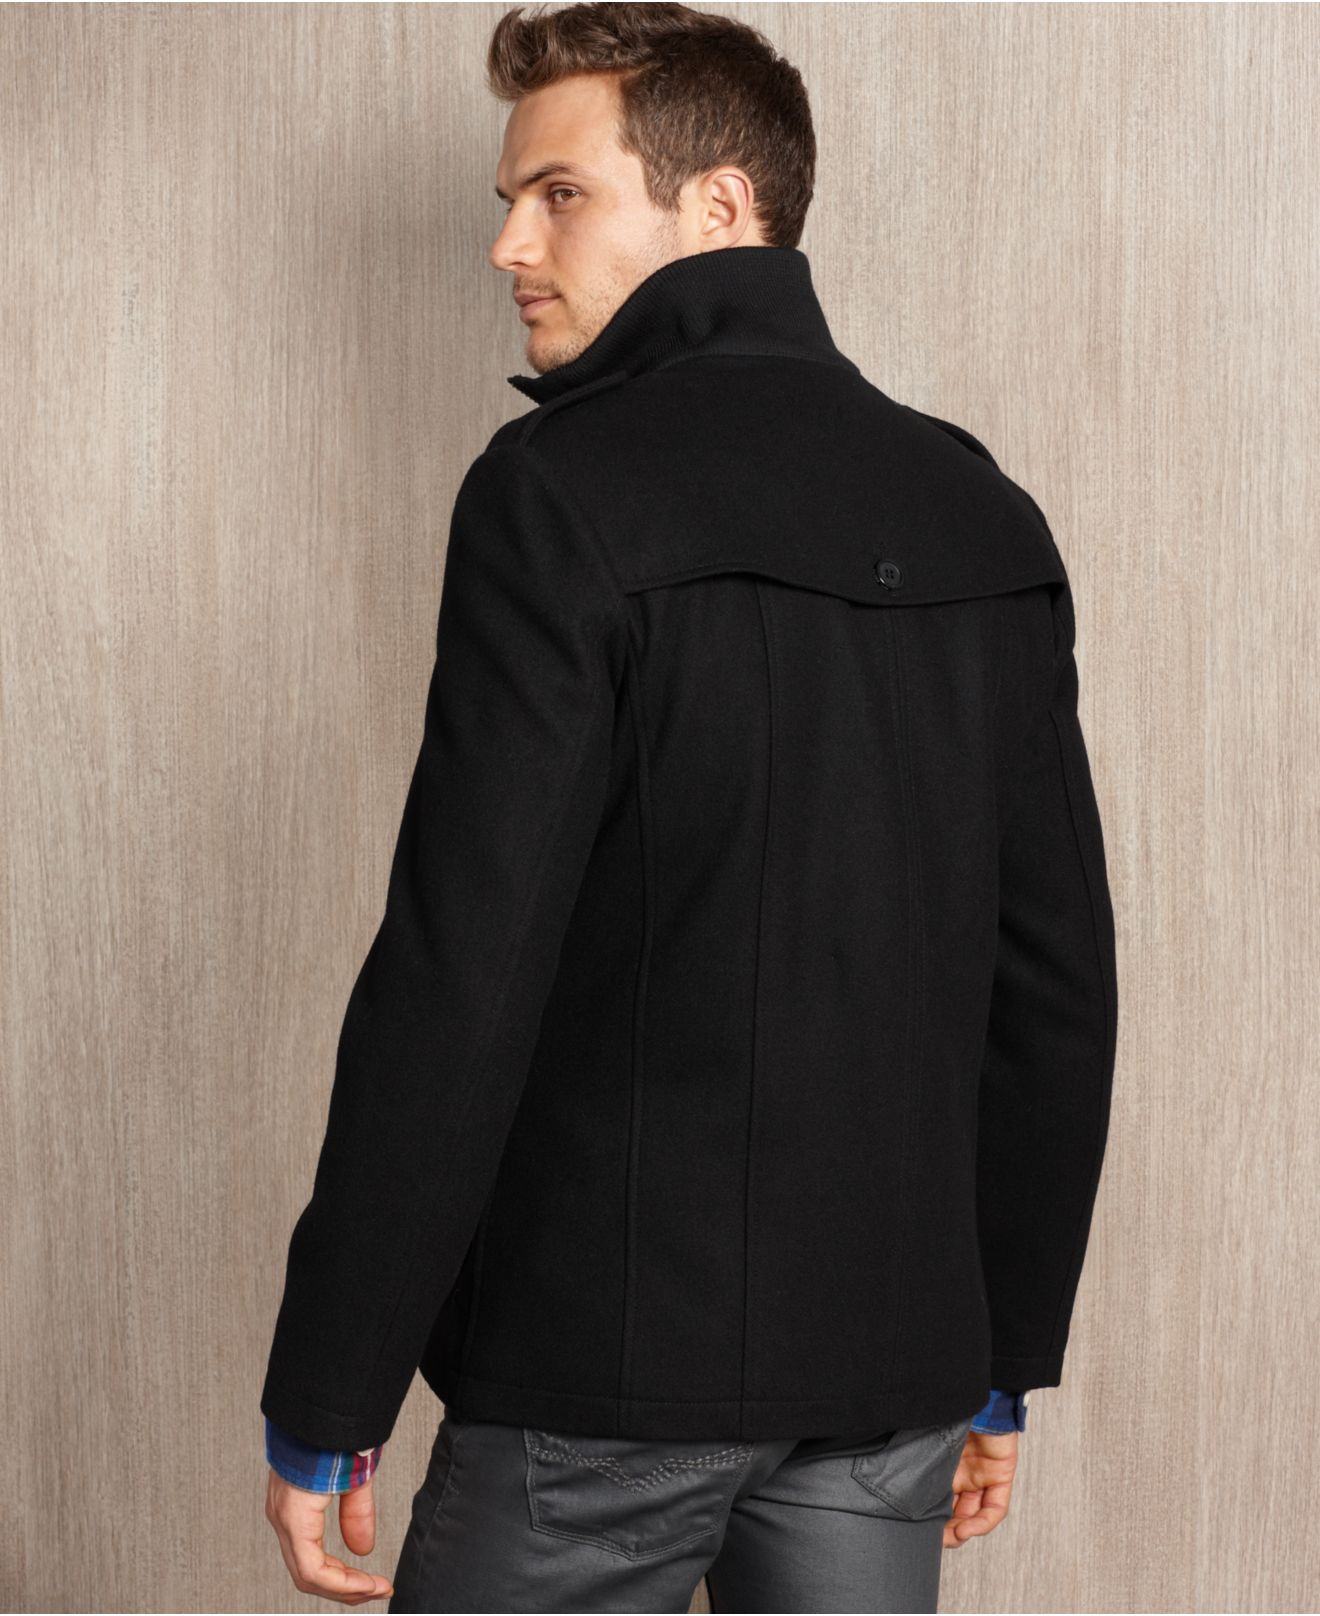 Guess Guess Coat Woolblend Double-breasted Modern Pea Coat in ...